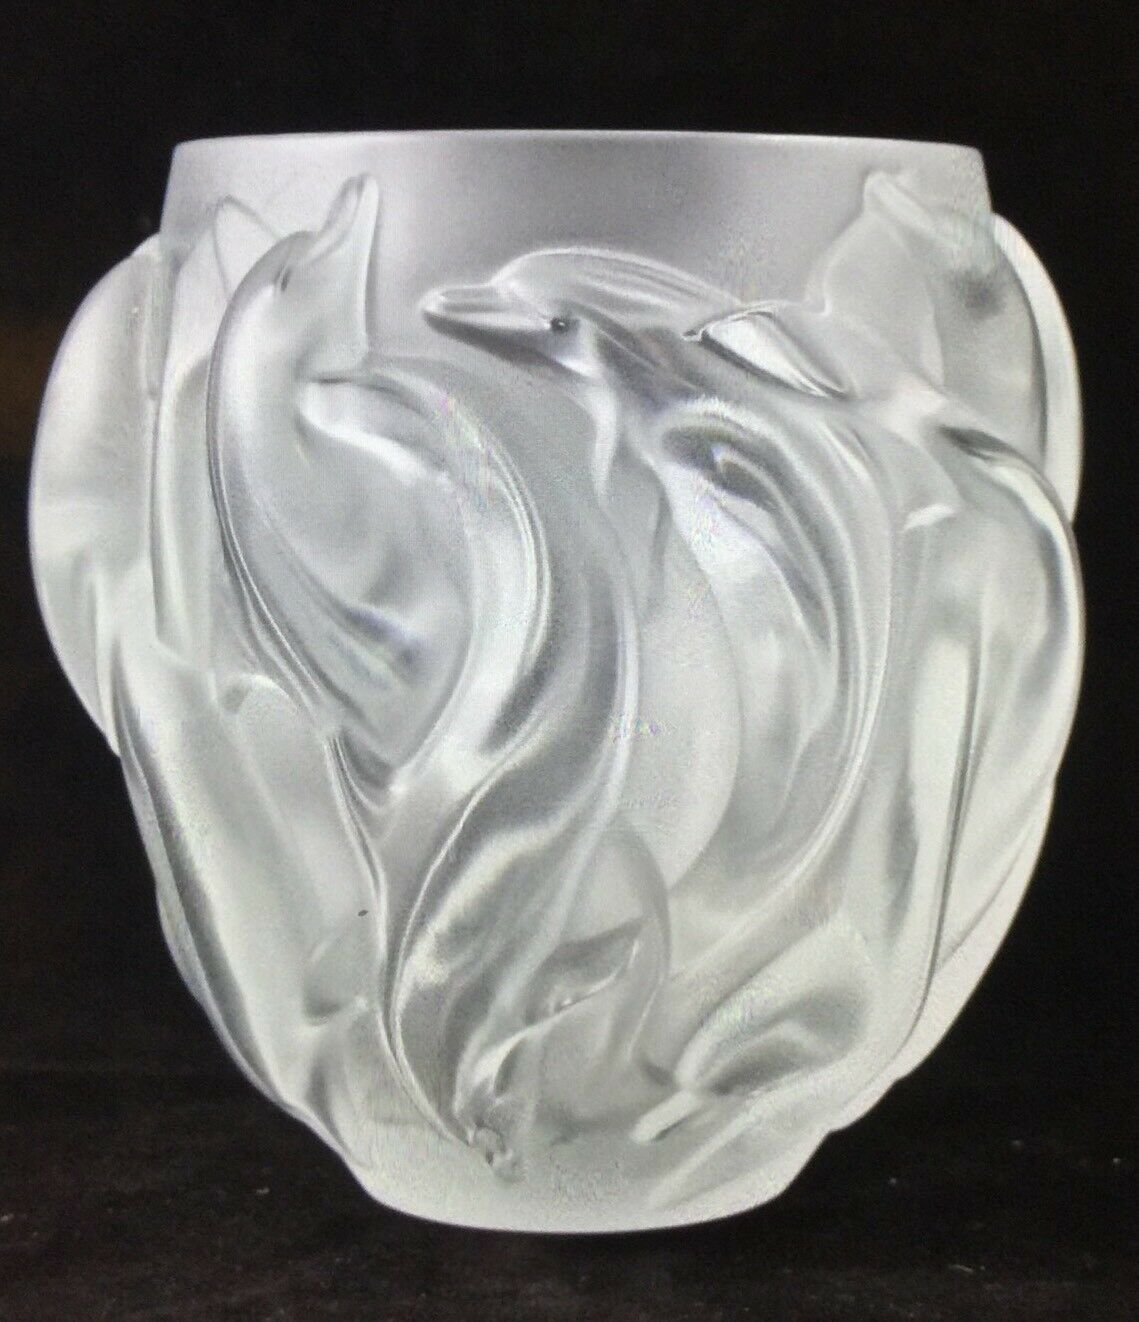 Lalique dolphin vase oceania model 12508 ebay resntentobalflowflowcomponentncel reviewsmspy